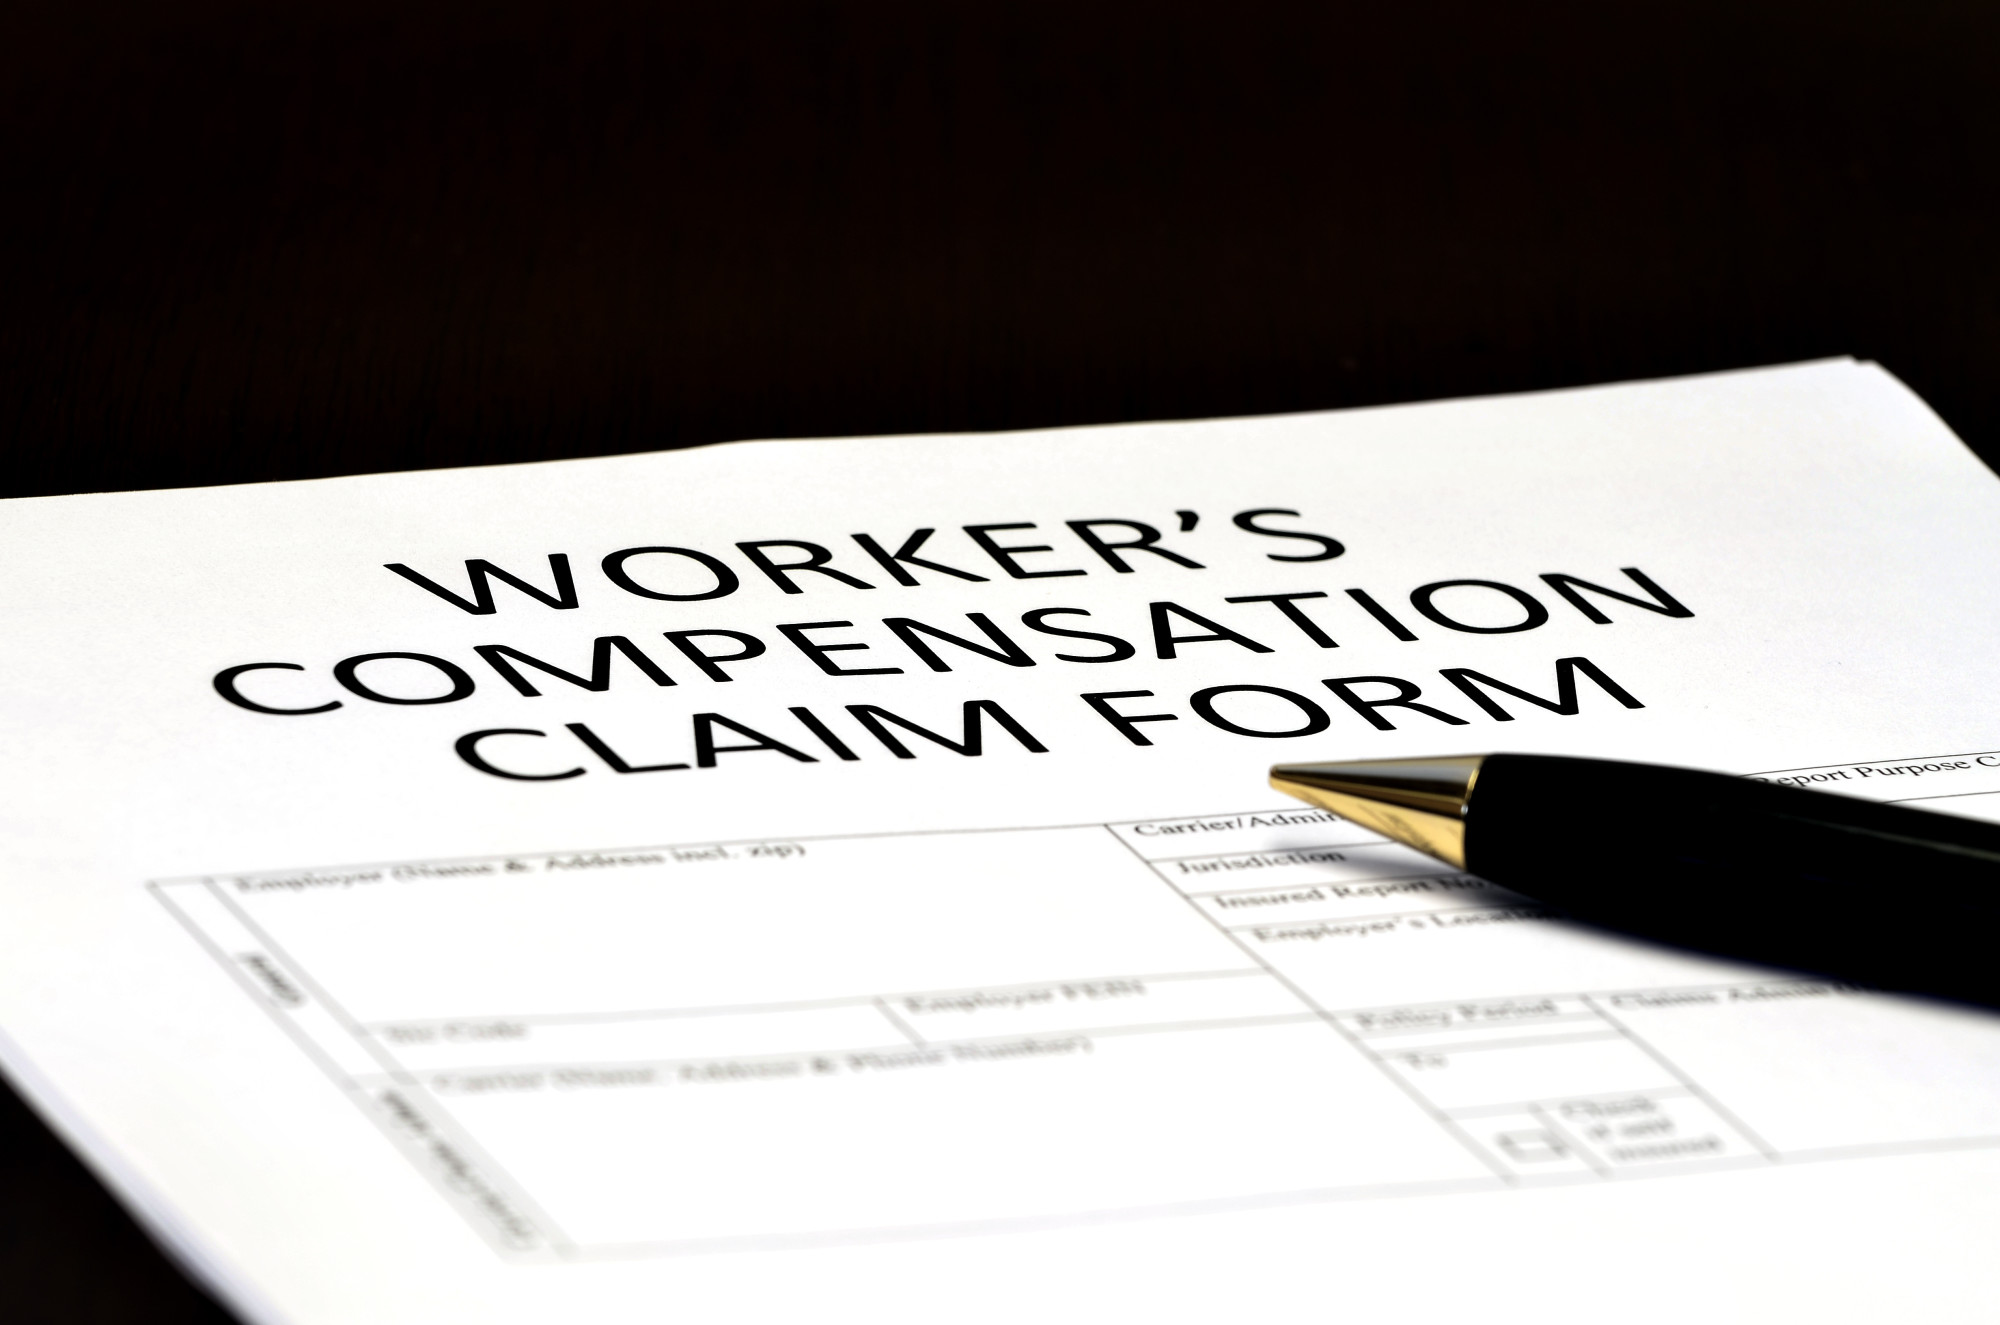 worker's compensation form in black background